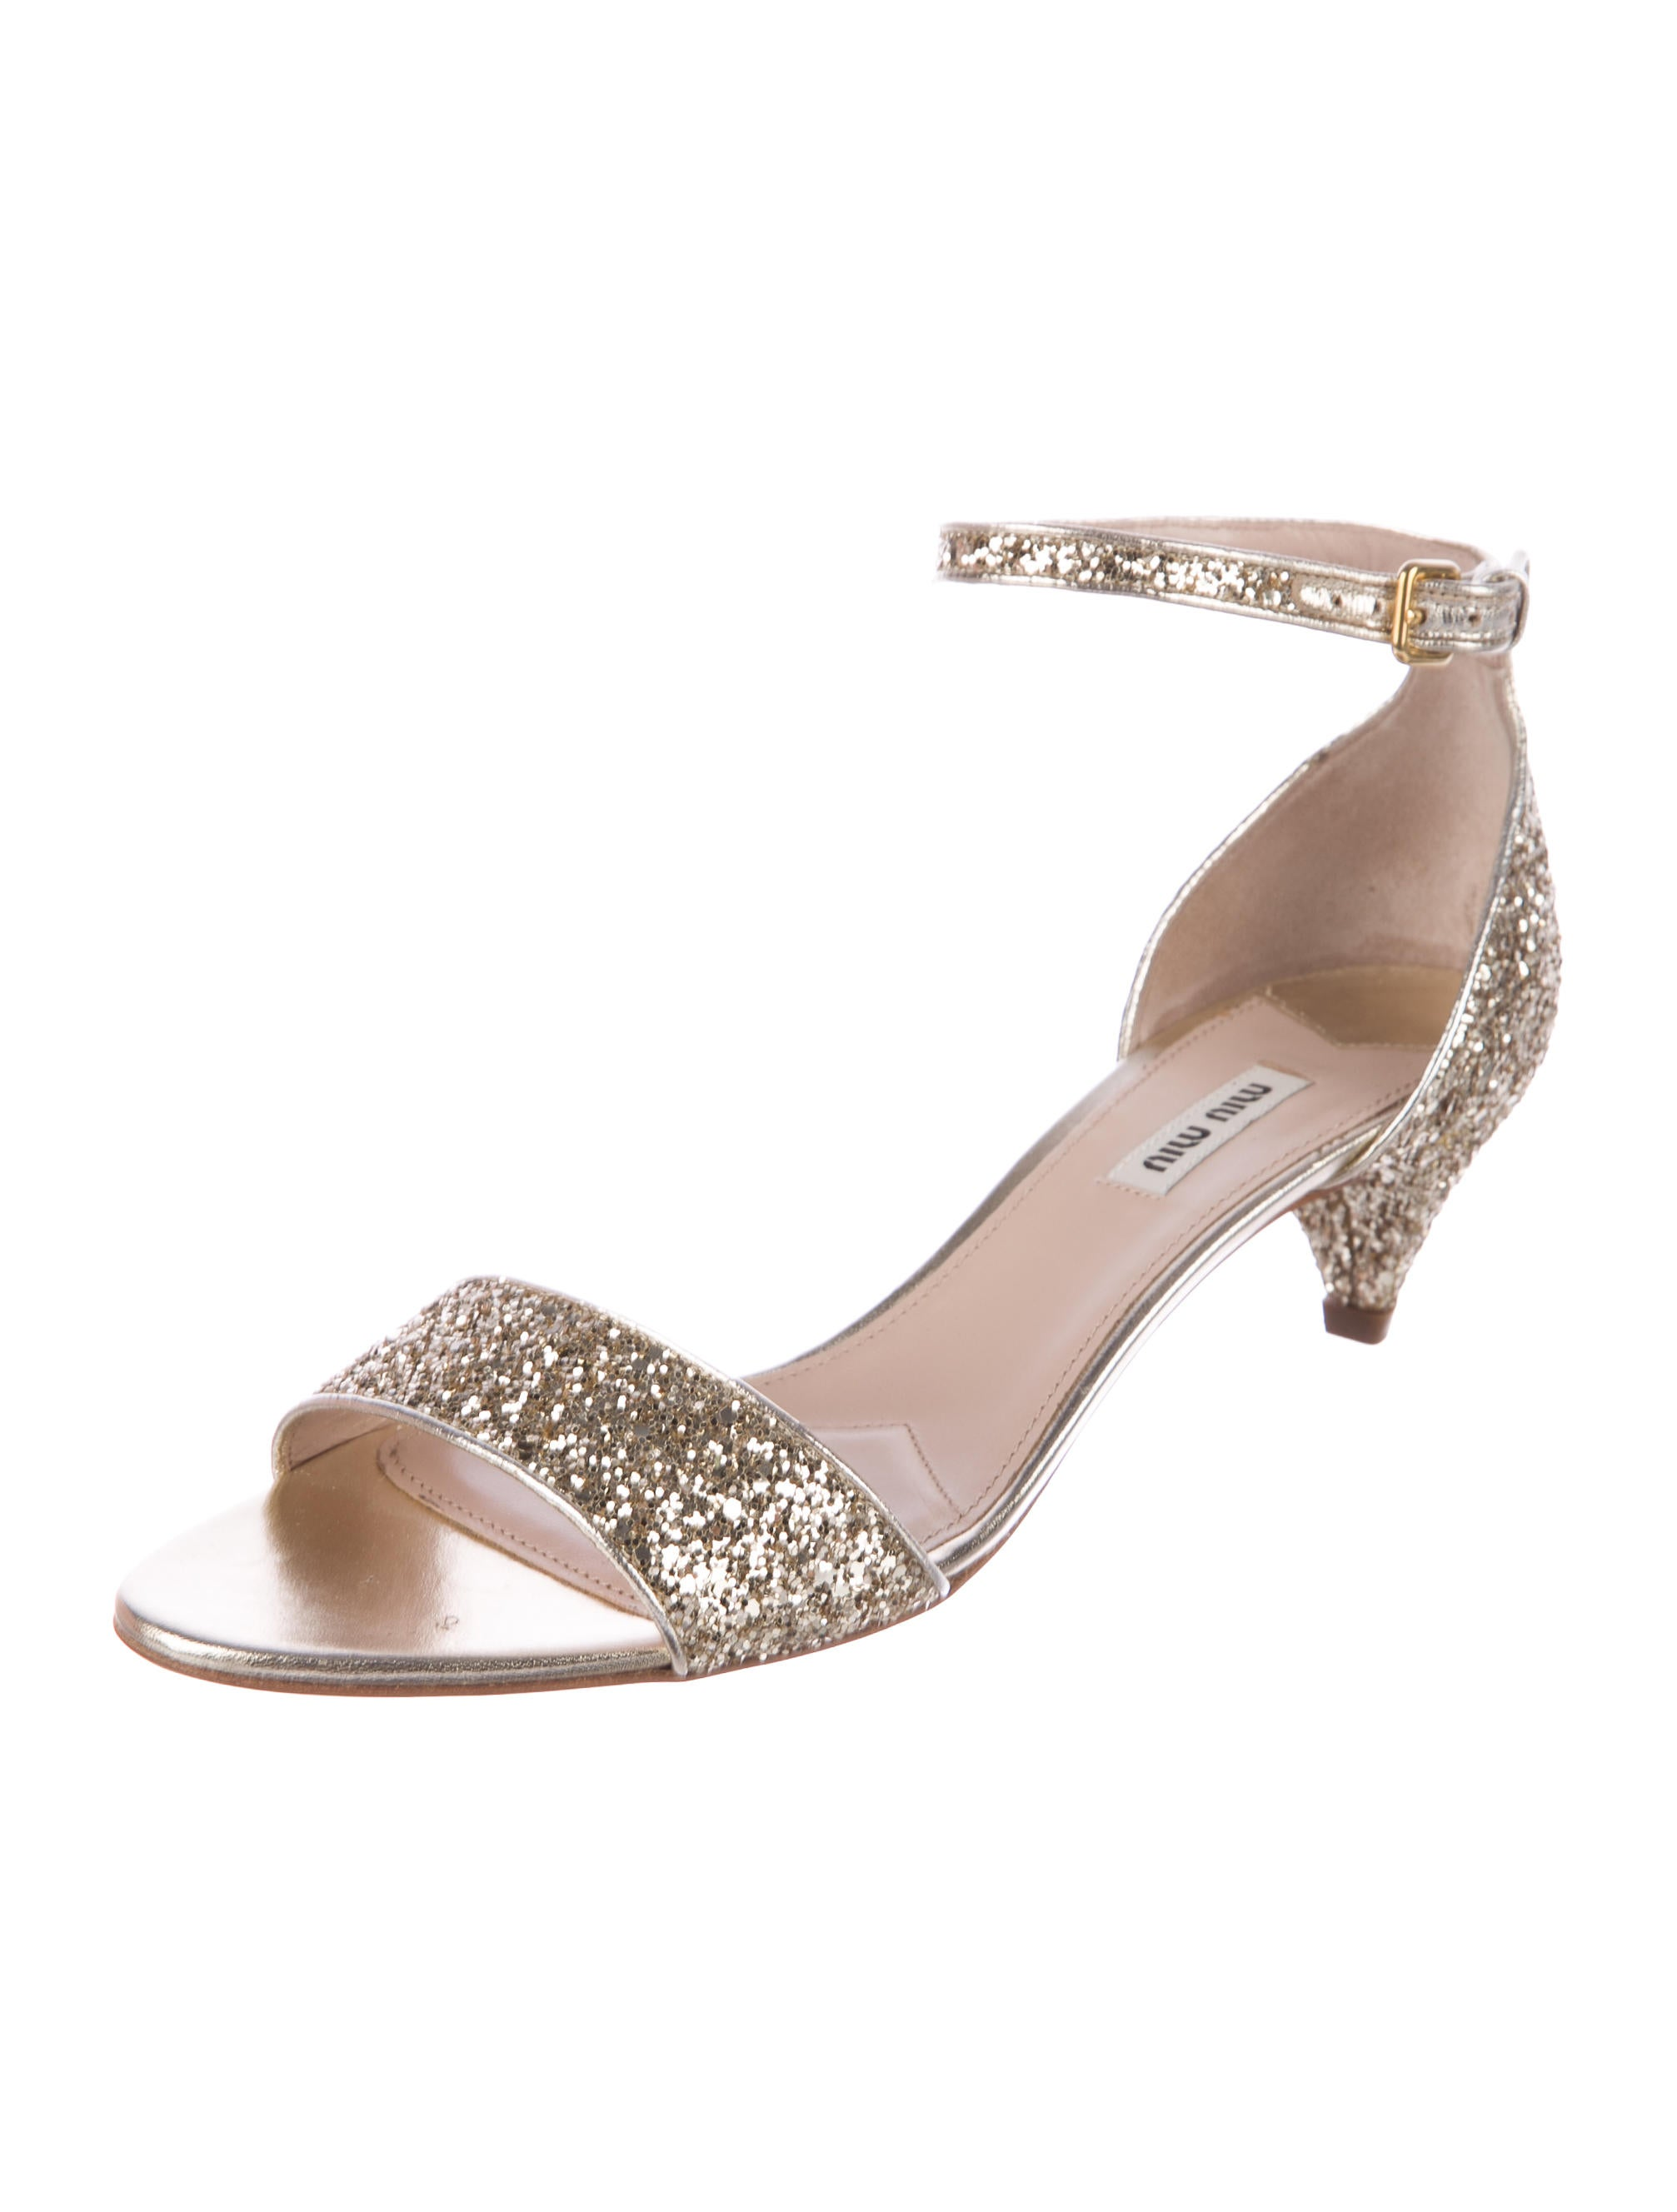 Miu Miu Glitter Ankle Strap Sandals w/ Tags high quality cheap online buy cheap purchase clearance view cNhZZbZWYD